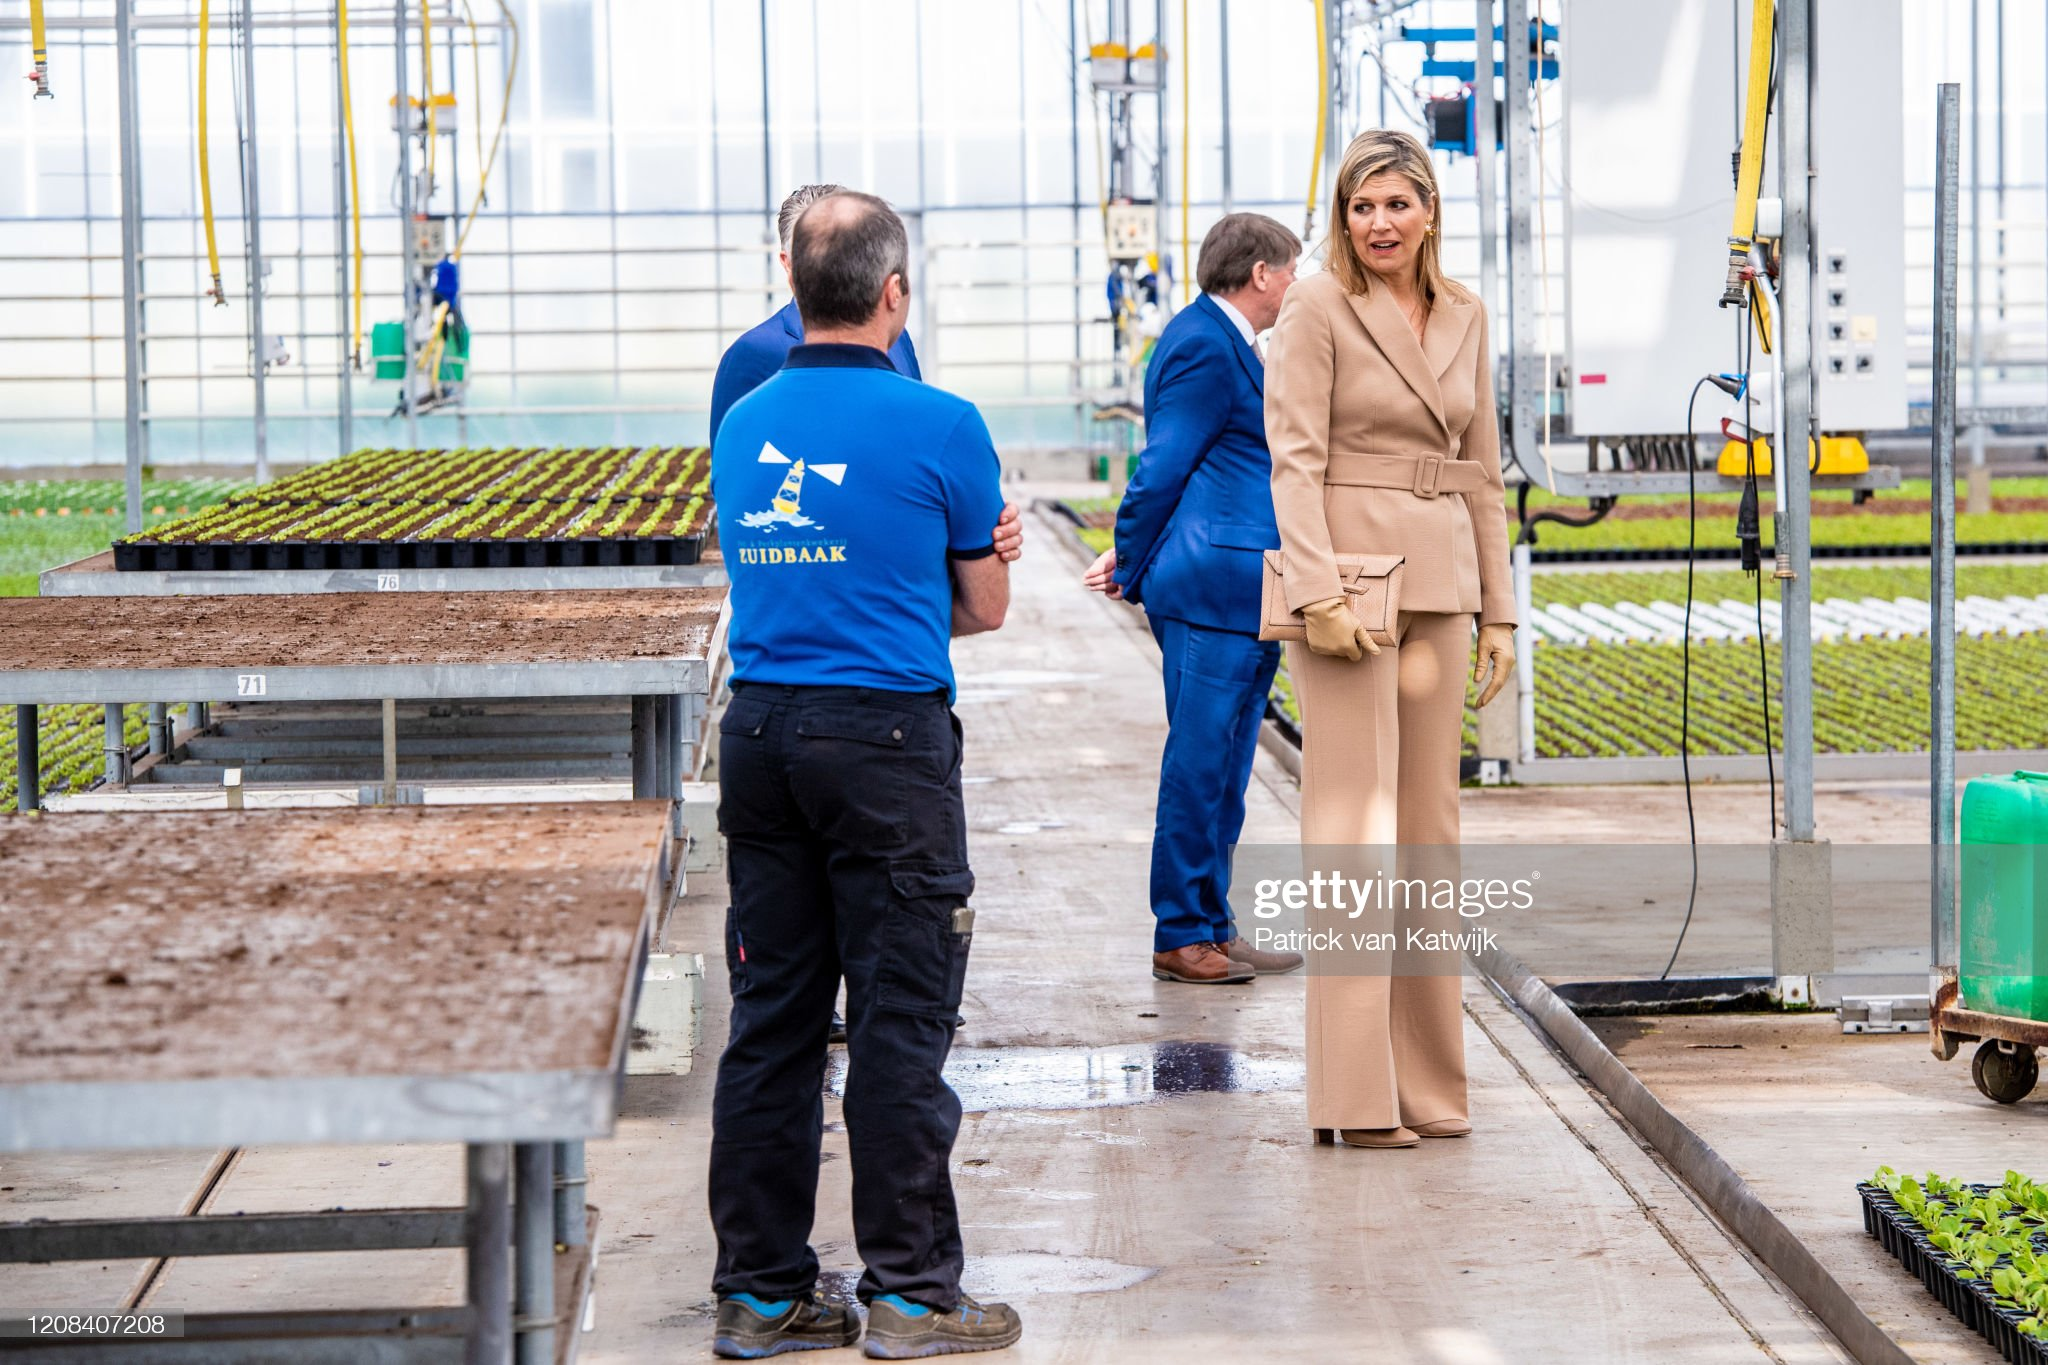 https://media.gettyimages.com/photos/queen-maxima-of-the-netherlands-visits-zuidbaak-floriculture-company-picture-id1208407208?s=2048x2048